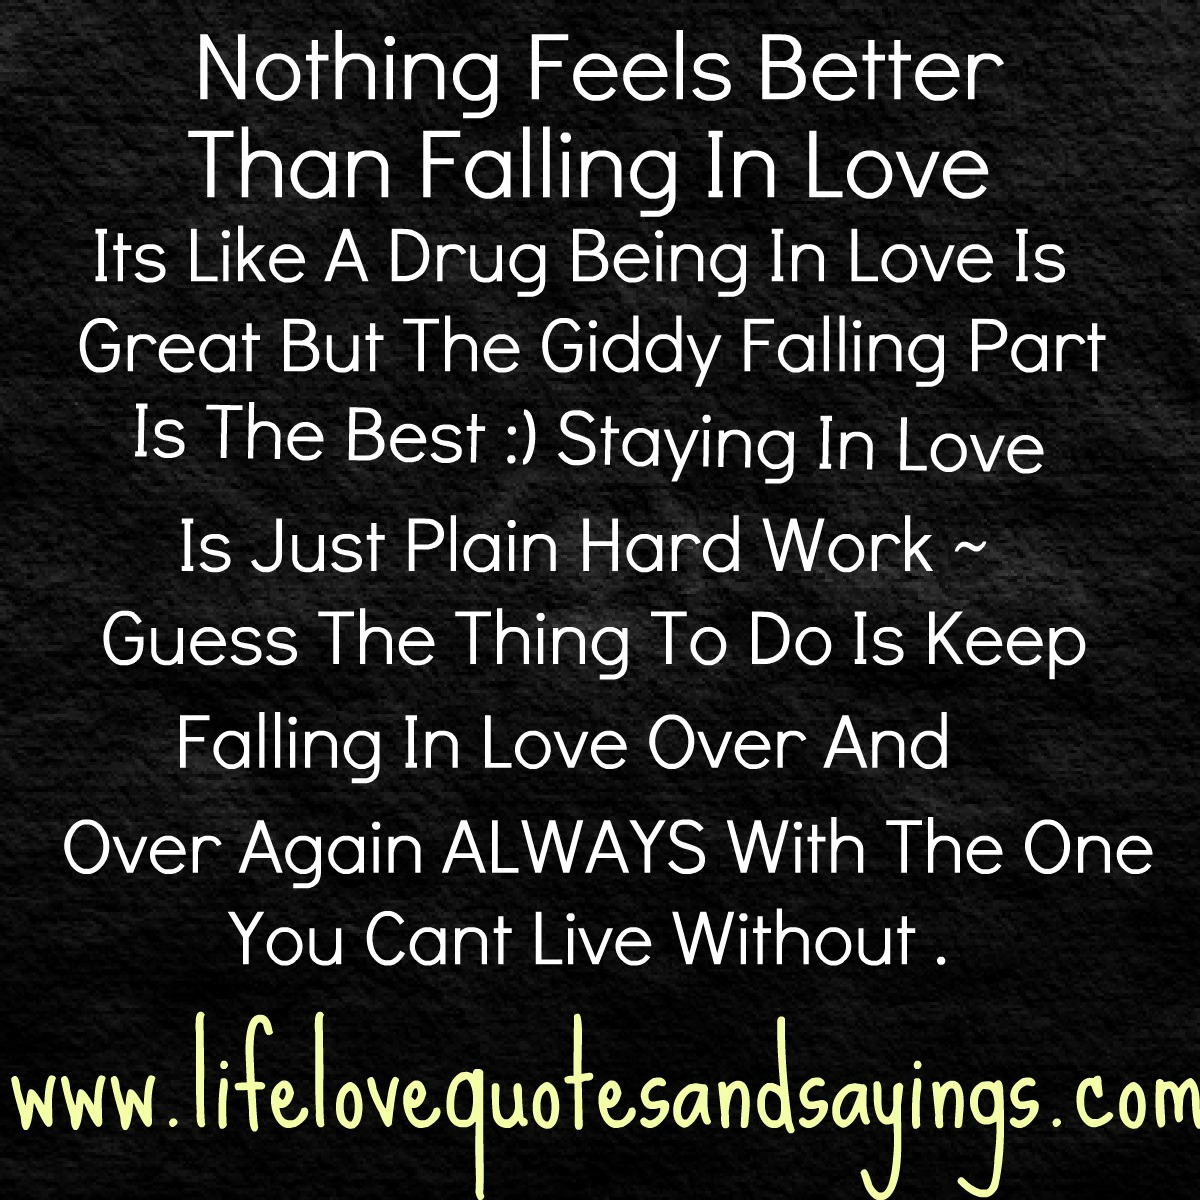 Quotes About Falling In Love: Falling In Love Quotes For Him. QuotesGram